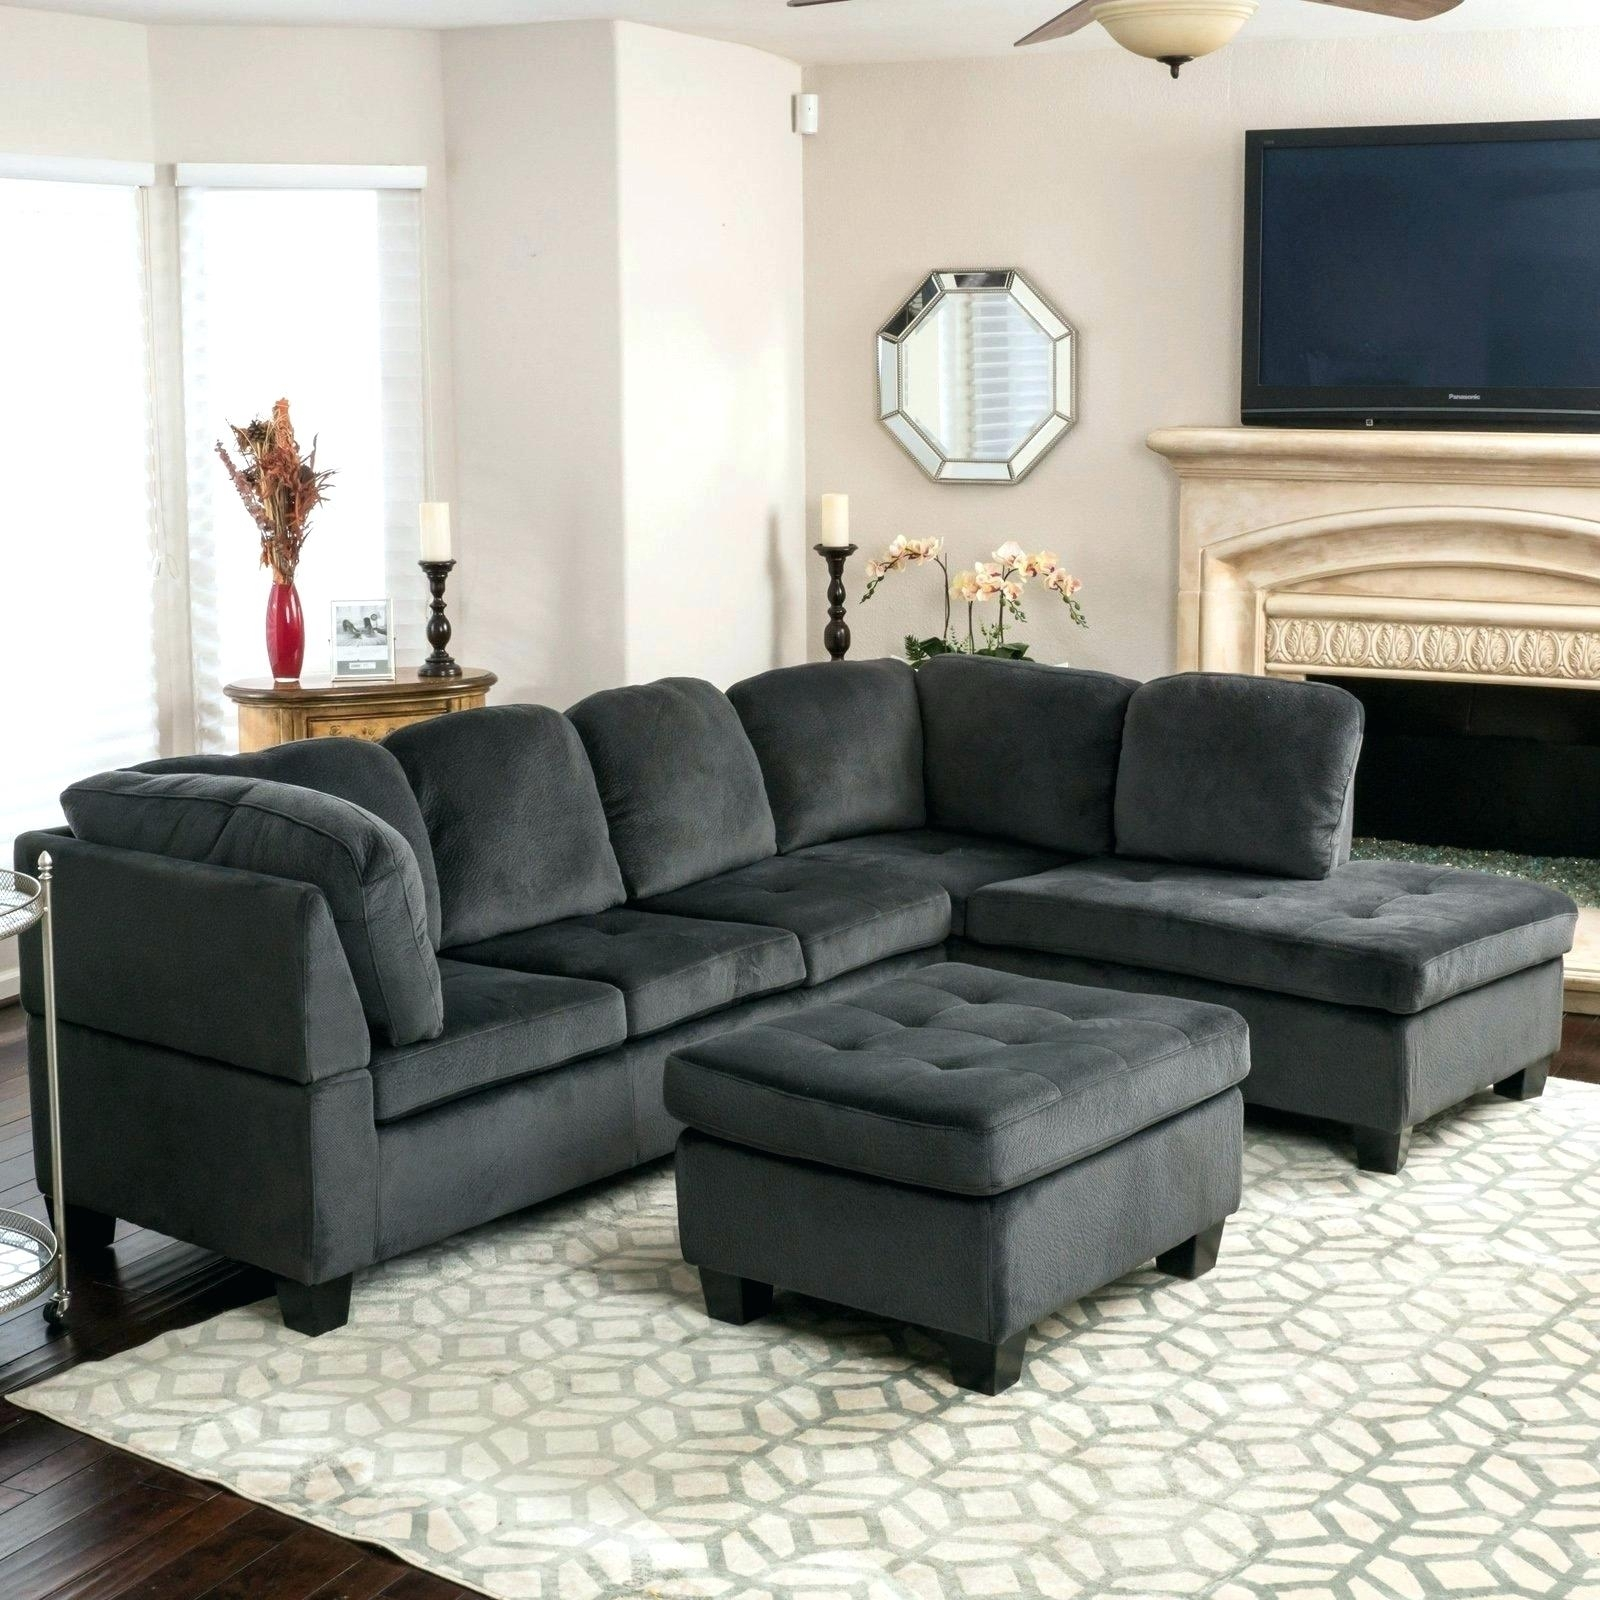 Sectional Sofas For Sale Couch Salem Or Clearance Canada Pertaining To Canada Sale Sectional Sofas (View 2 of 10)